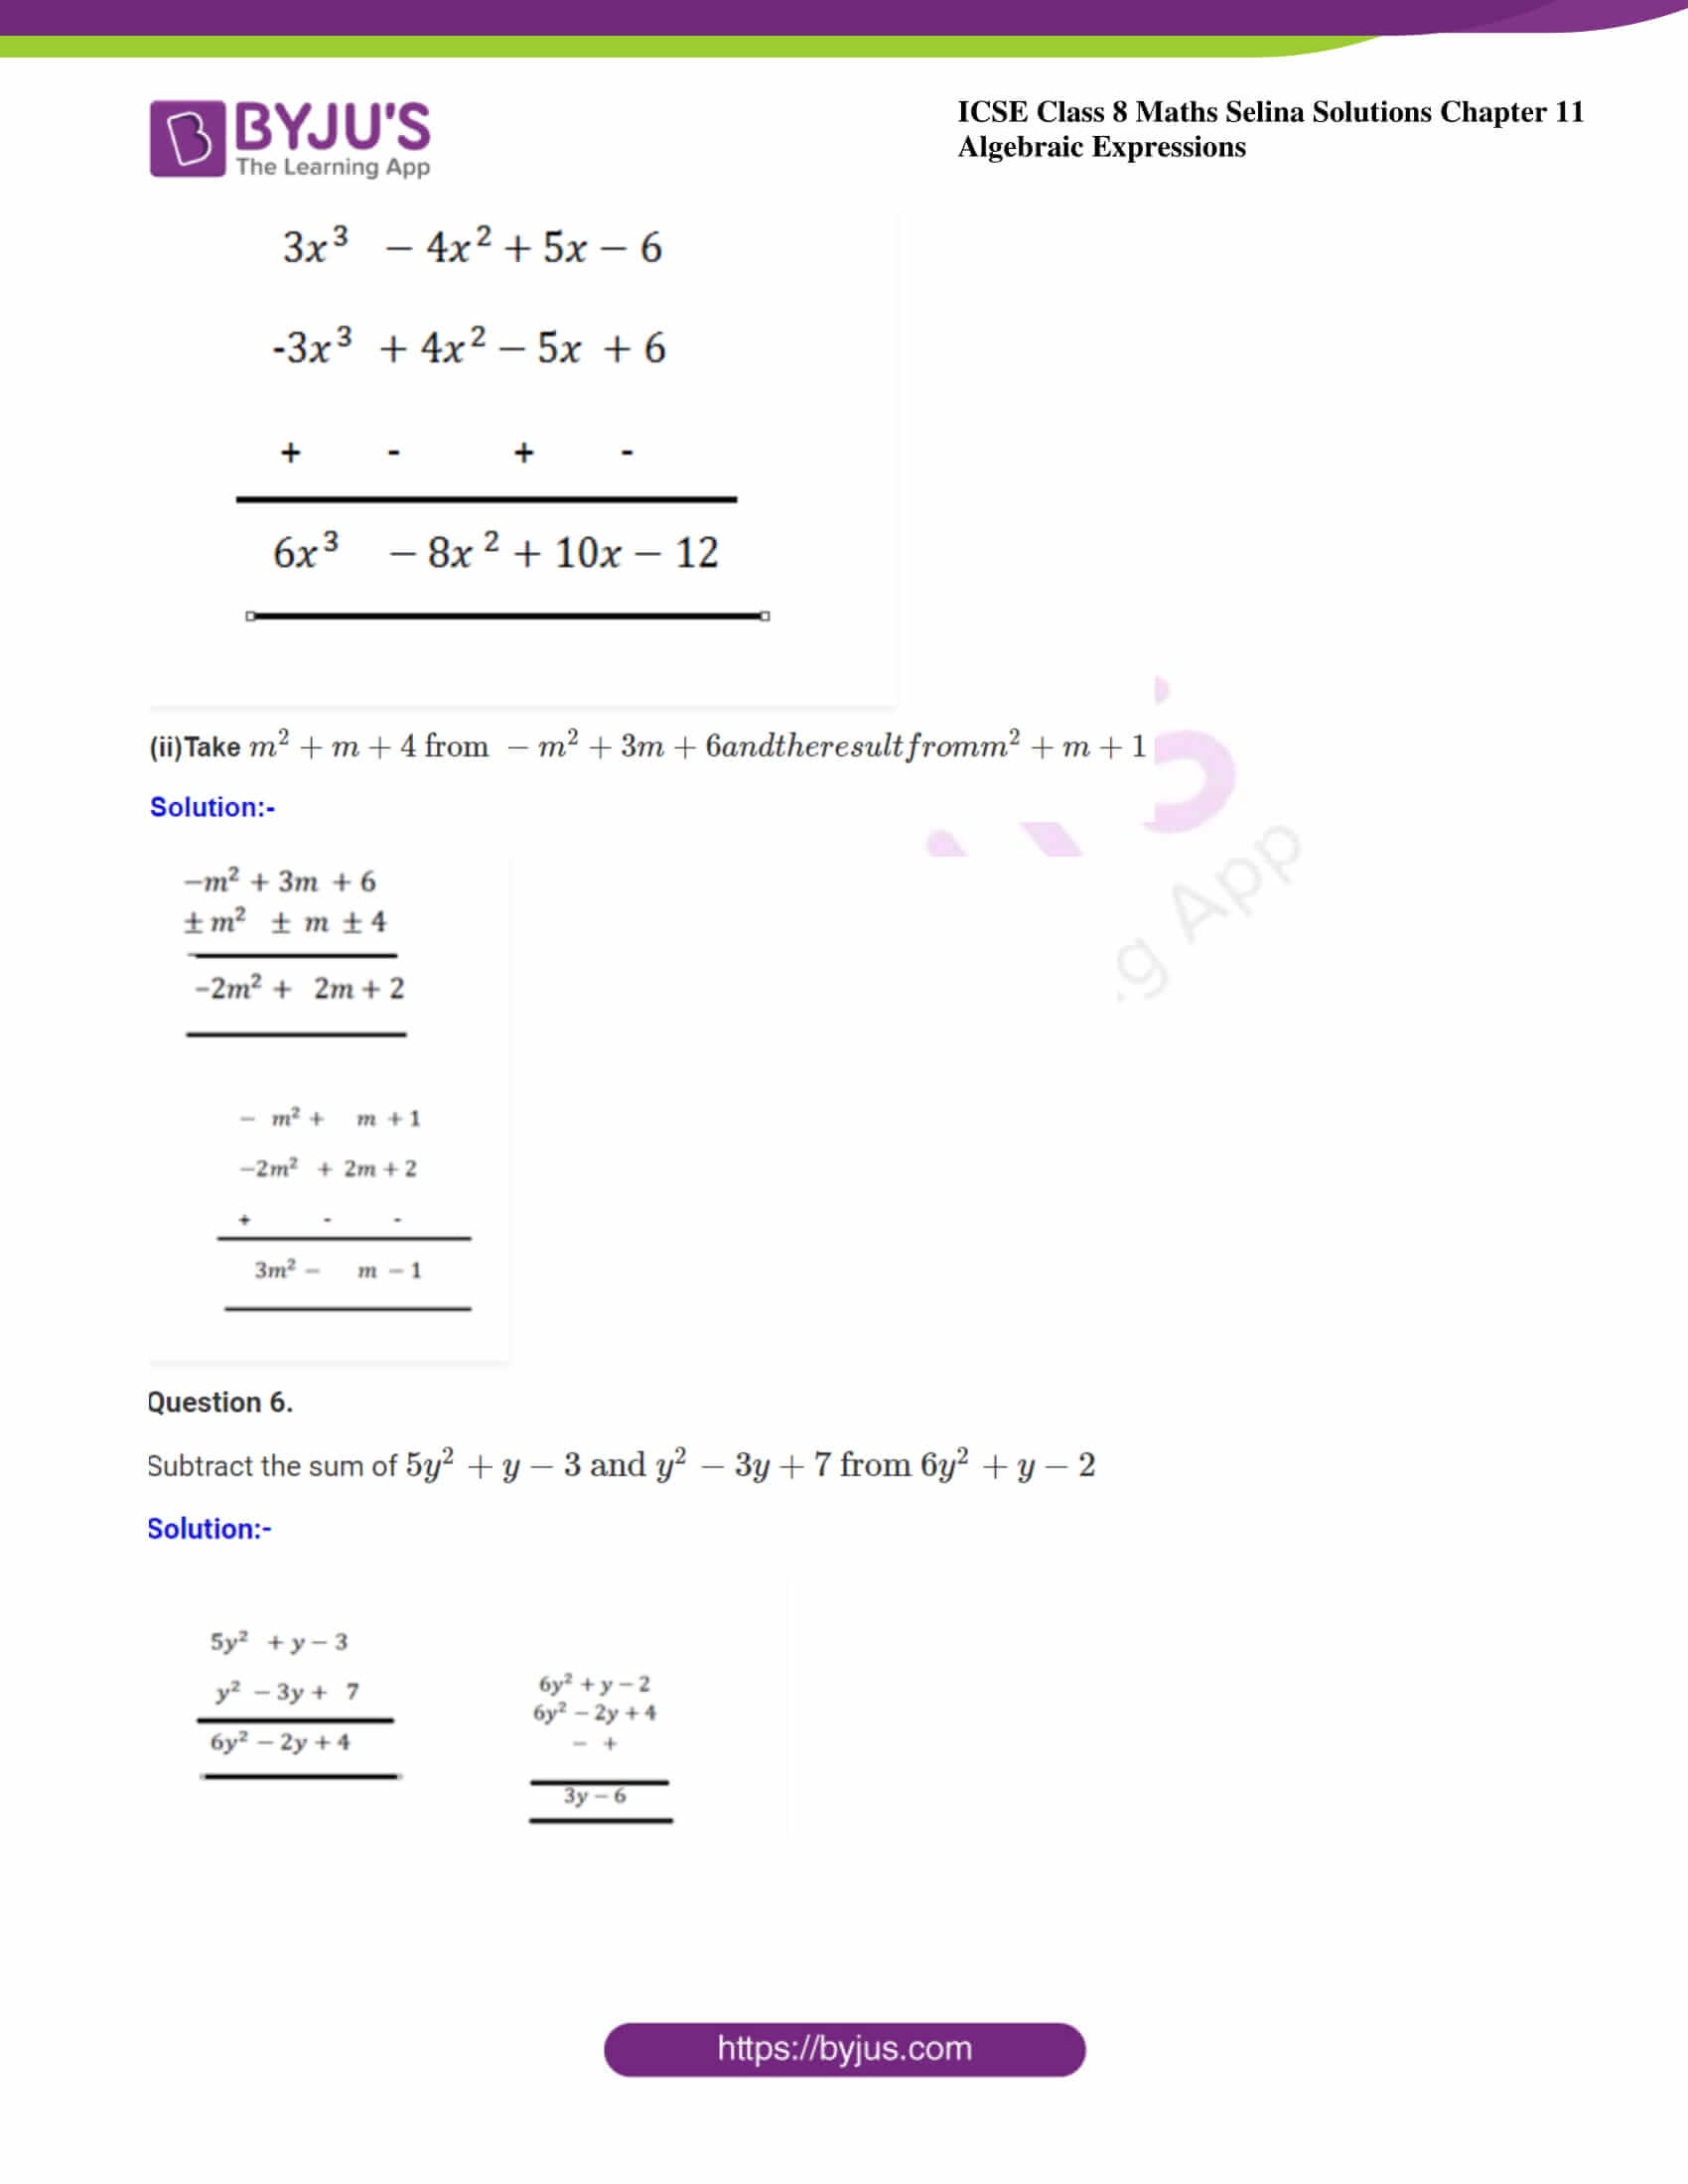 icse class 8 maths may3 selina solutions chapter 11 algebraic expressions 10